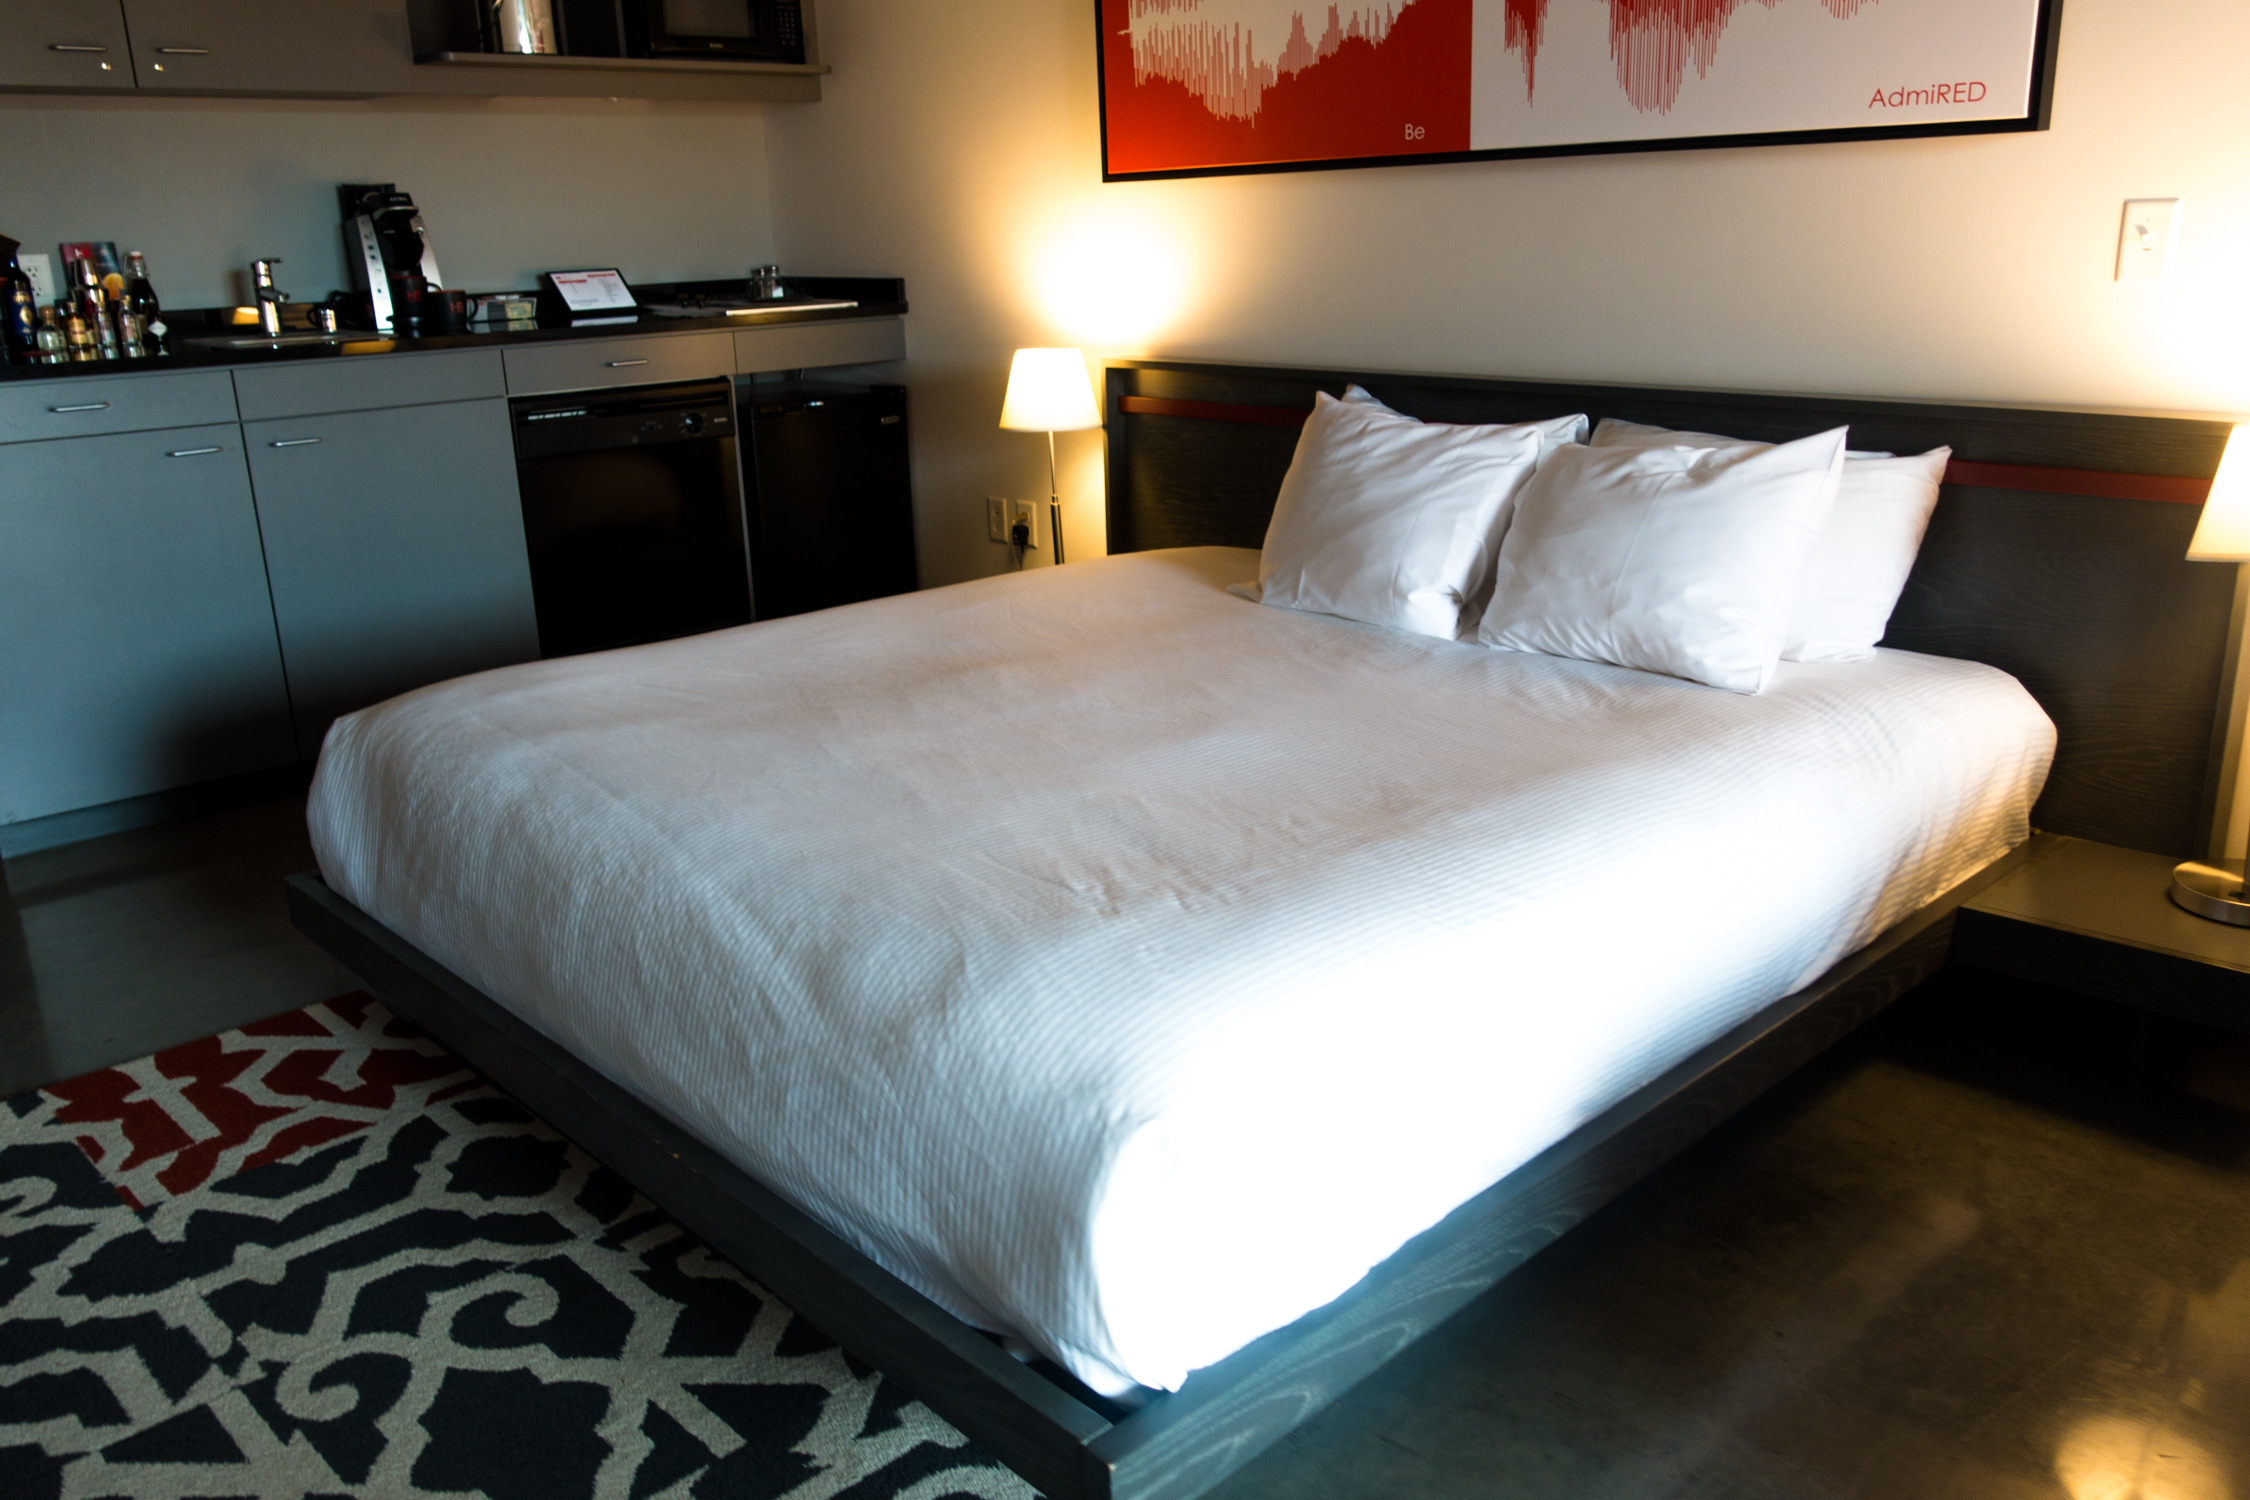 HOTELRED: PET-FRIENDLY HOTEL IN MADISON, WI